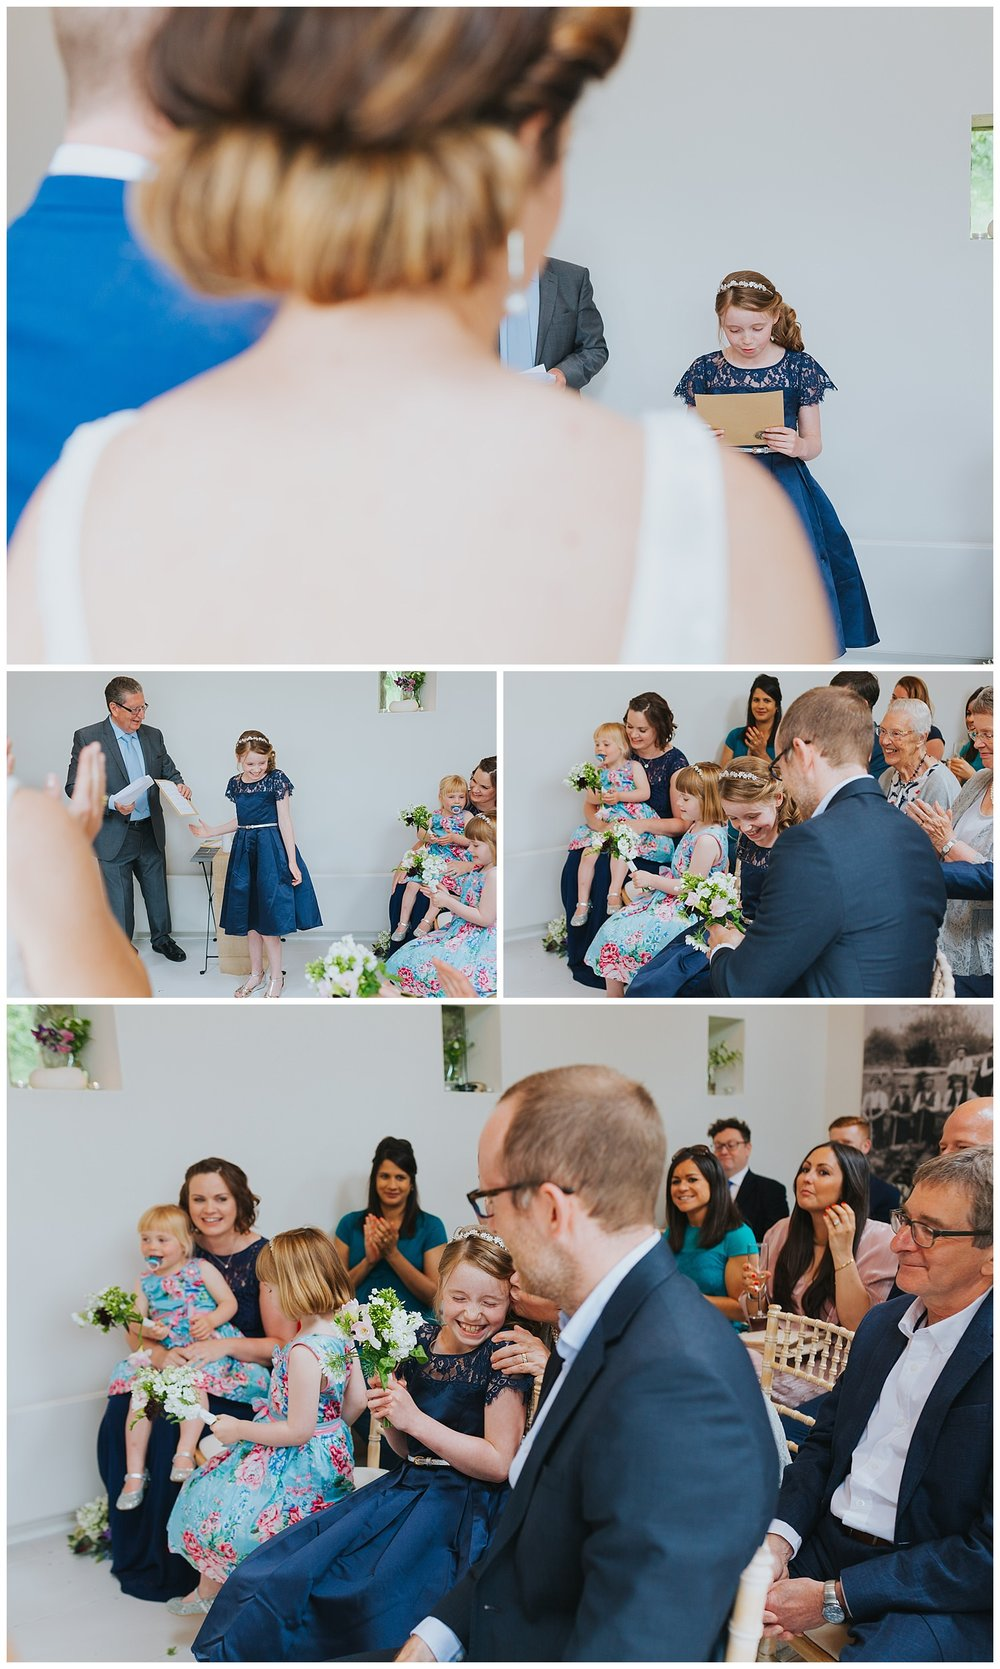 e+t_ballilogue_kilkenny_wedding_photographer_liviafigueiredo_100.jpg